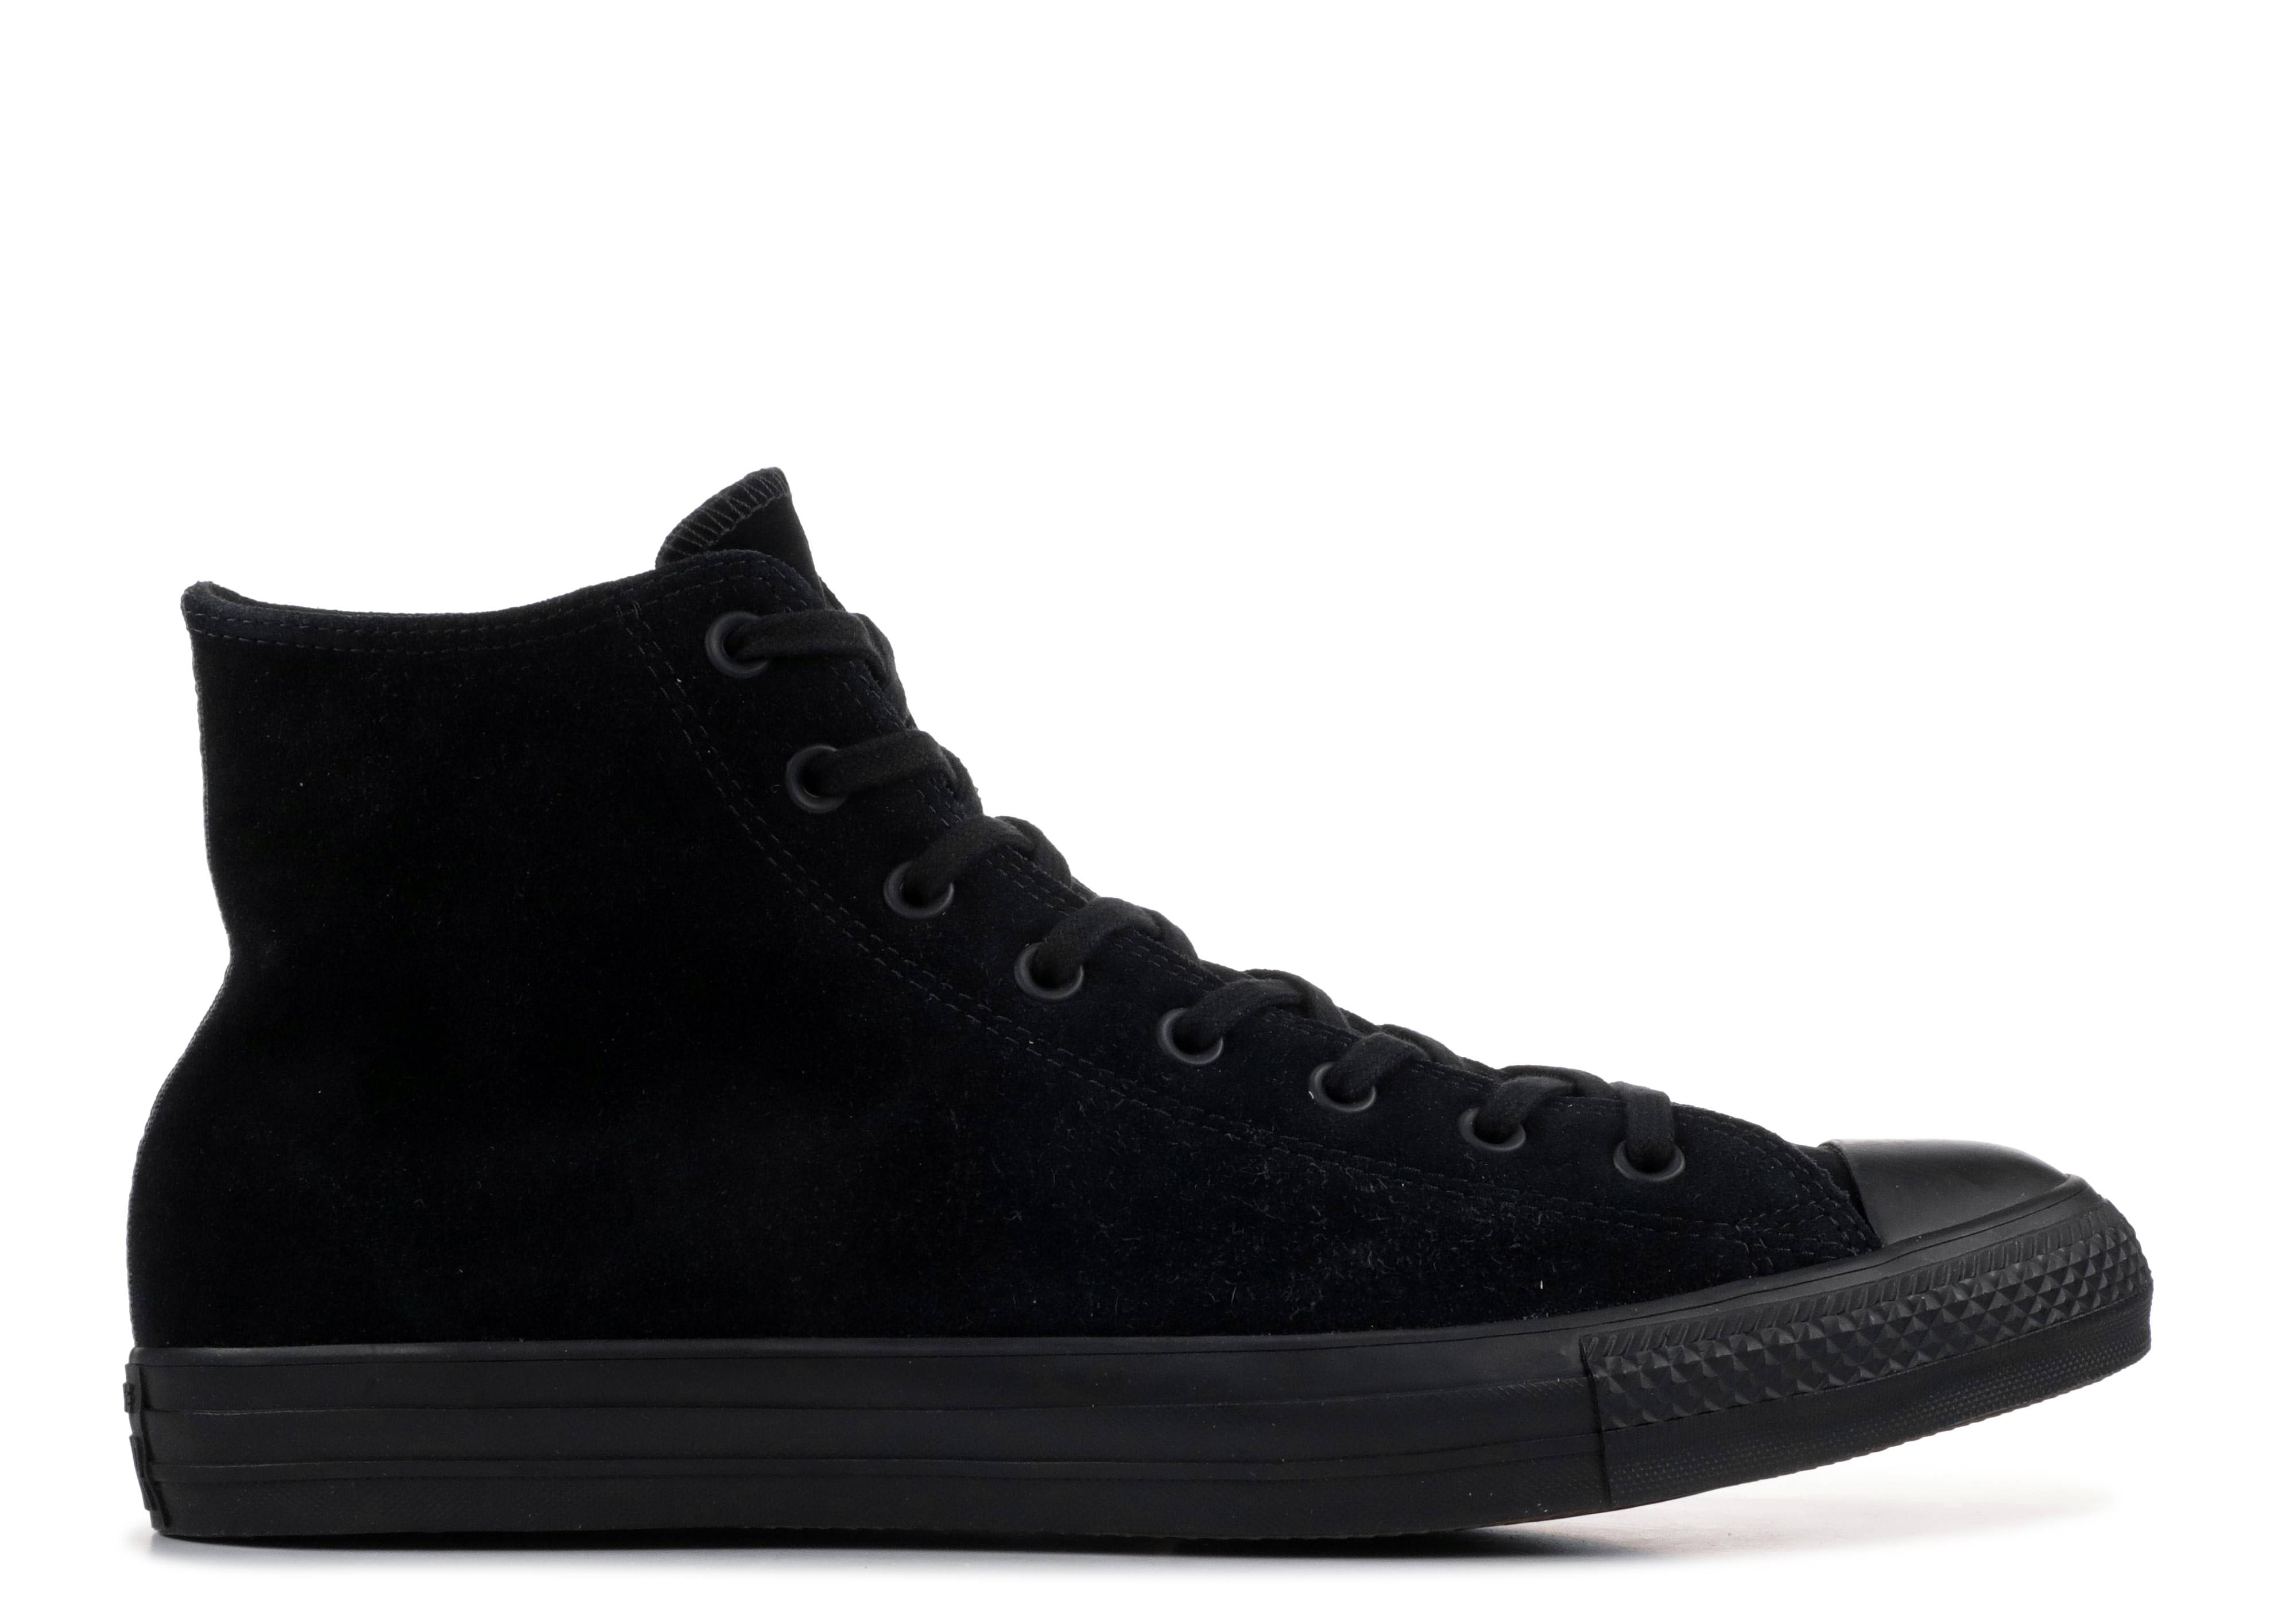 chuck taylor all star hi top counter climate